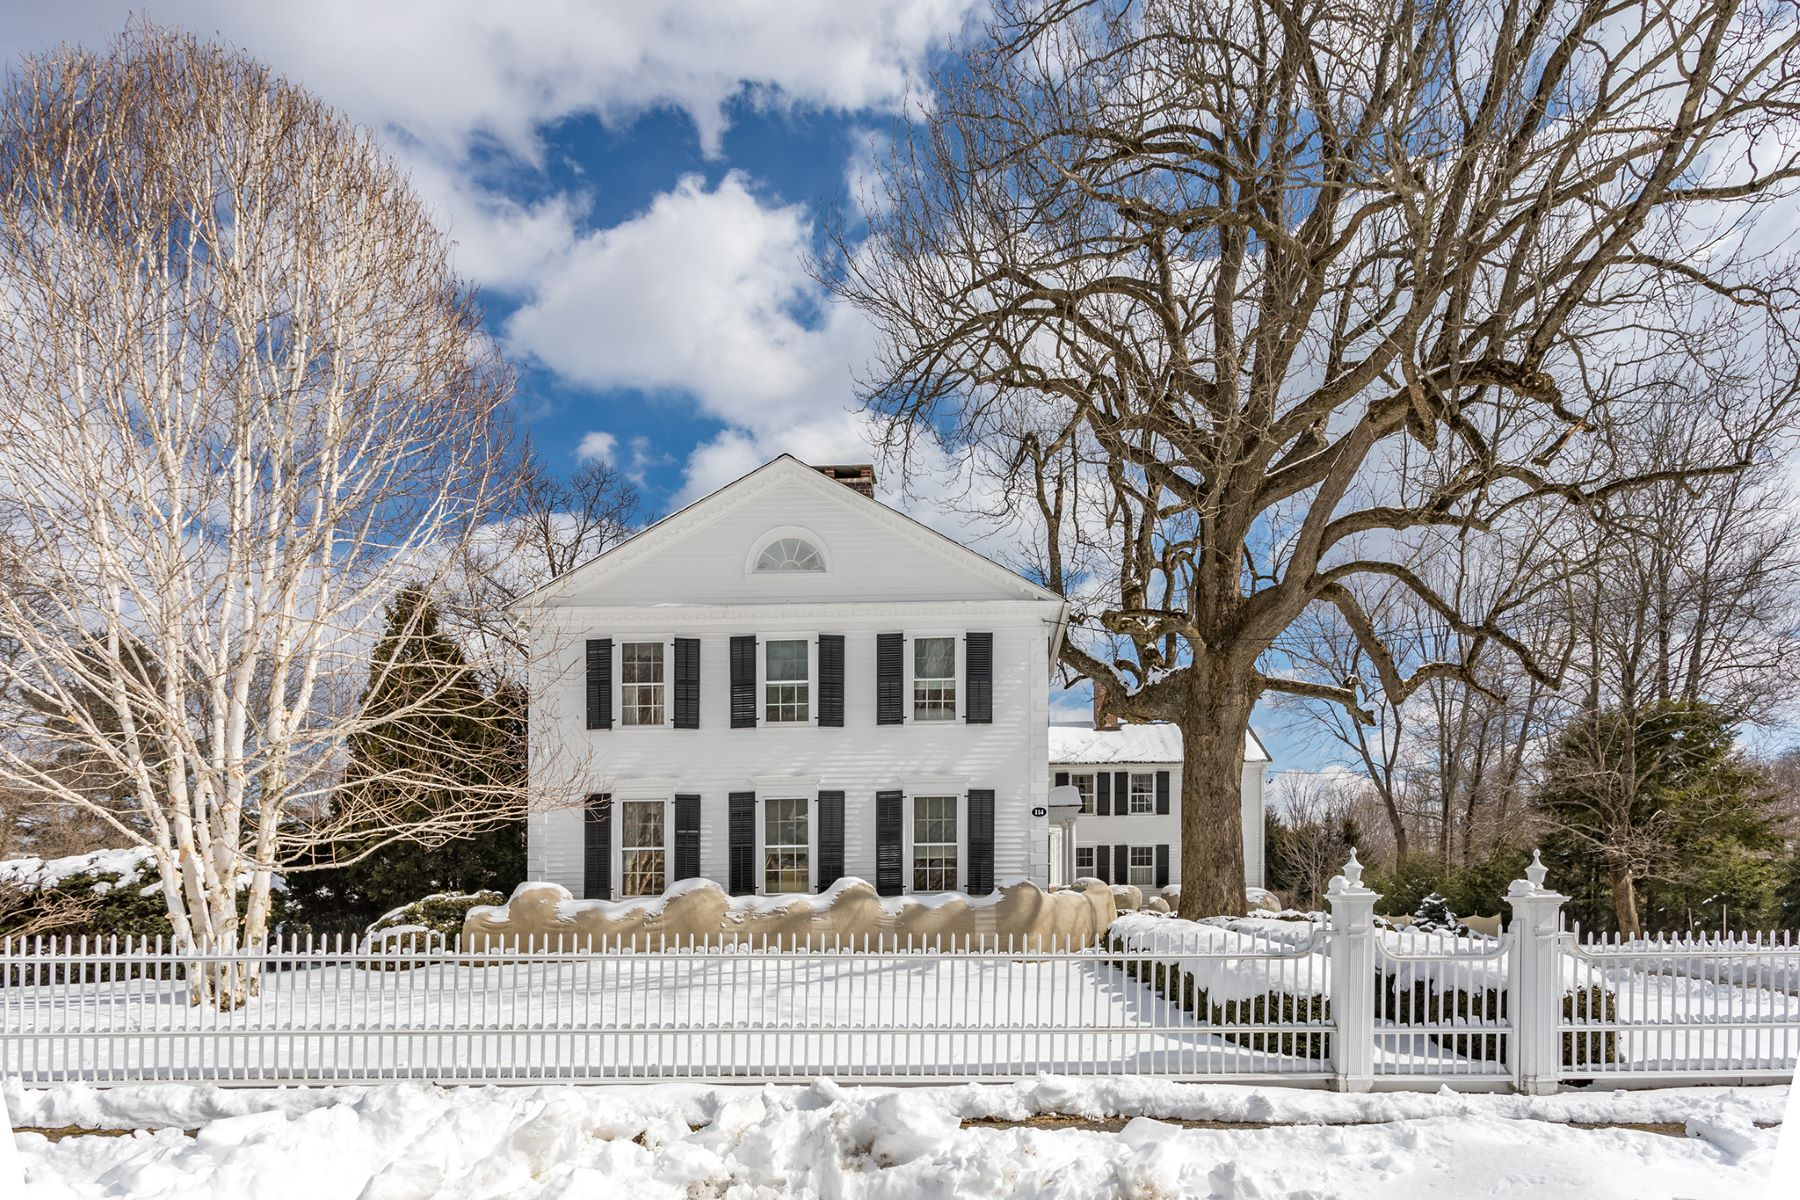 Casa Unifamiliar por un Venta en Goodwin-Riley House circa 1828 114 North St Litchfield, Connecticut 06759 Estados Unidos